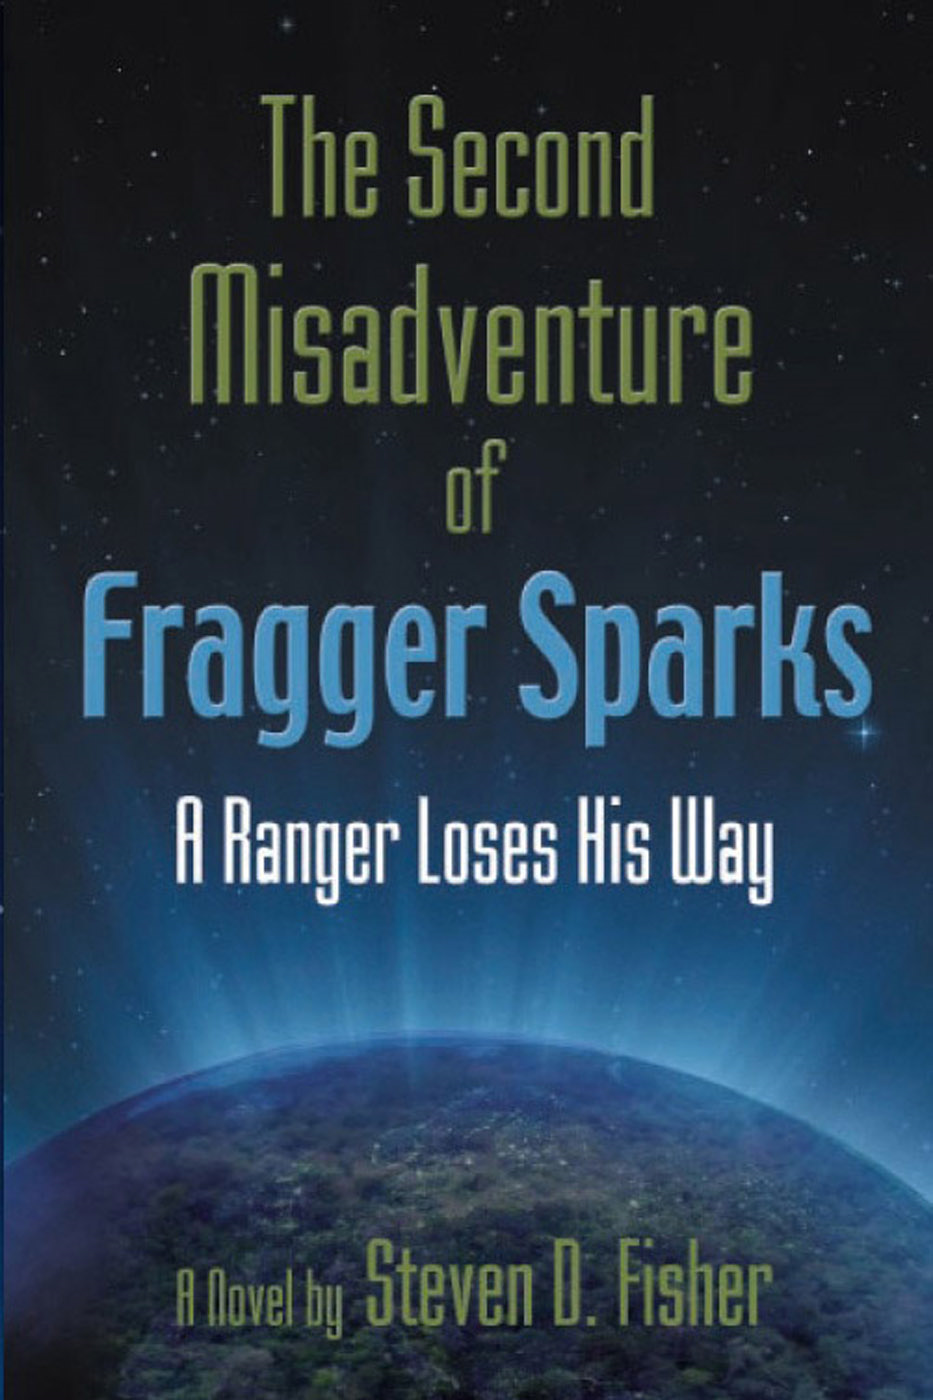 The Second Misadventure of Fragger Sparks